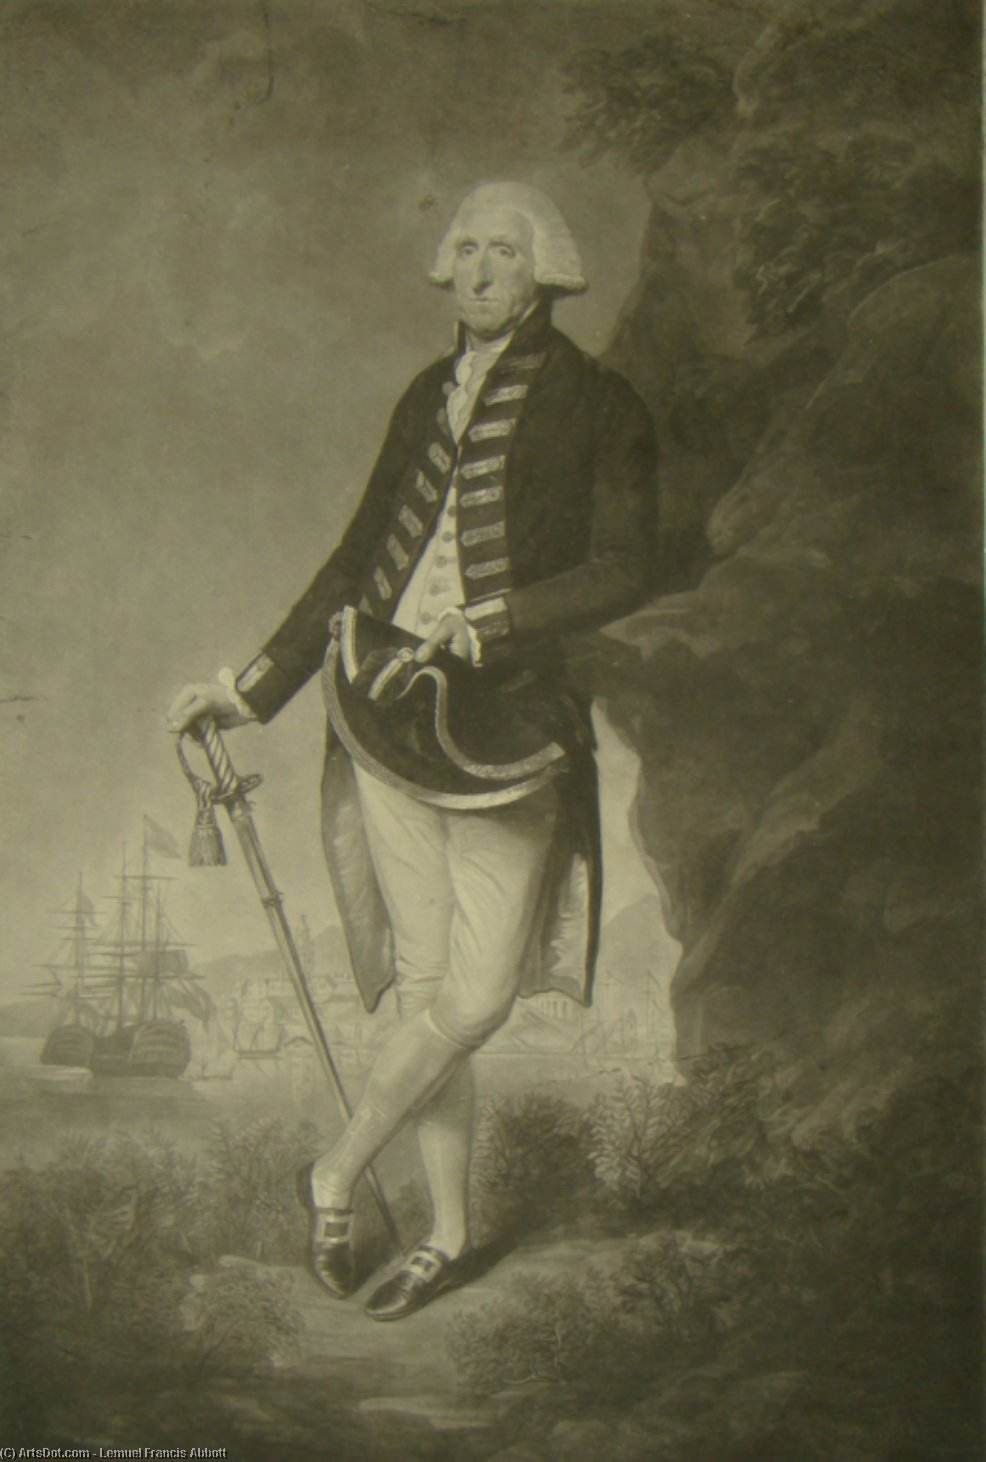 The Rt Hon Lord Hood, Admiral of the Blue and Commander in Chief of His Majesty`s fleet in the Mediterranean by Lemuel Francis Abbott (1760-1802, United Kingdom) | Art Reproductions Lemuel Francis Abbott | ArtsDot.com